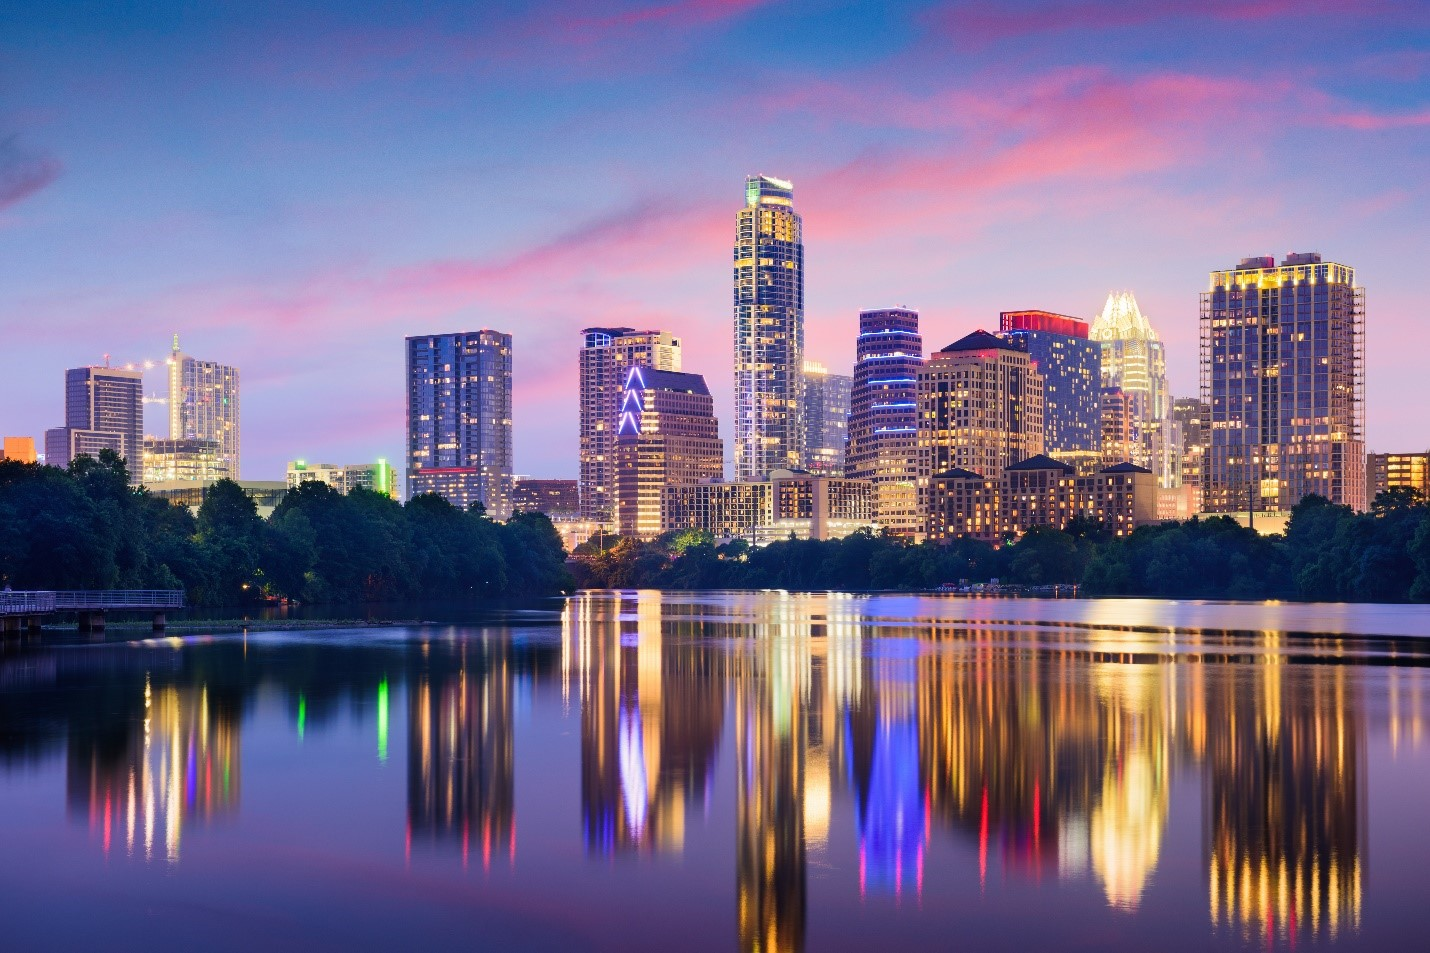 City skyline at sunset in Austin, Texas